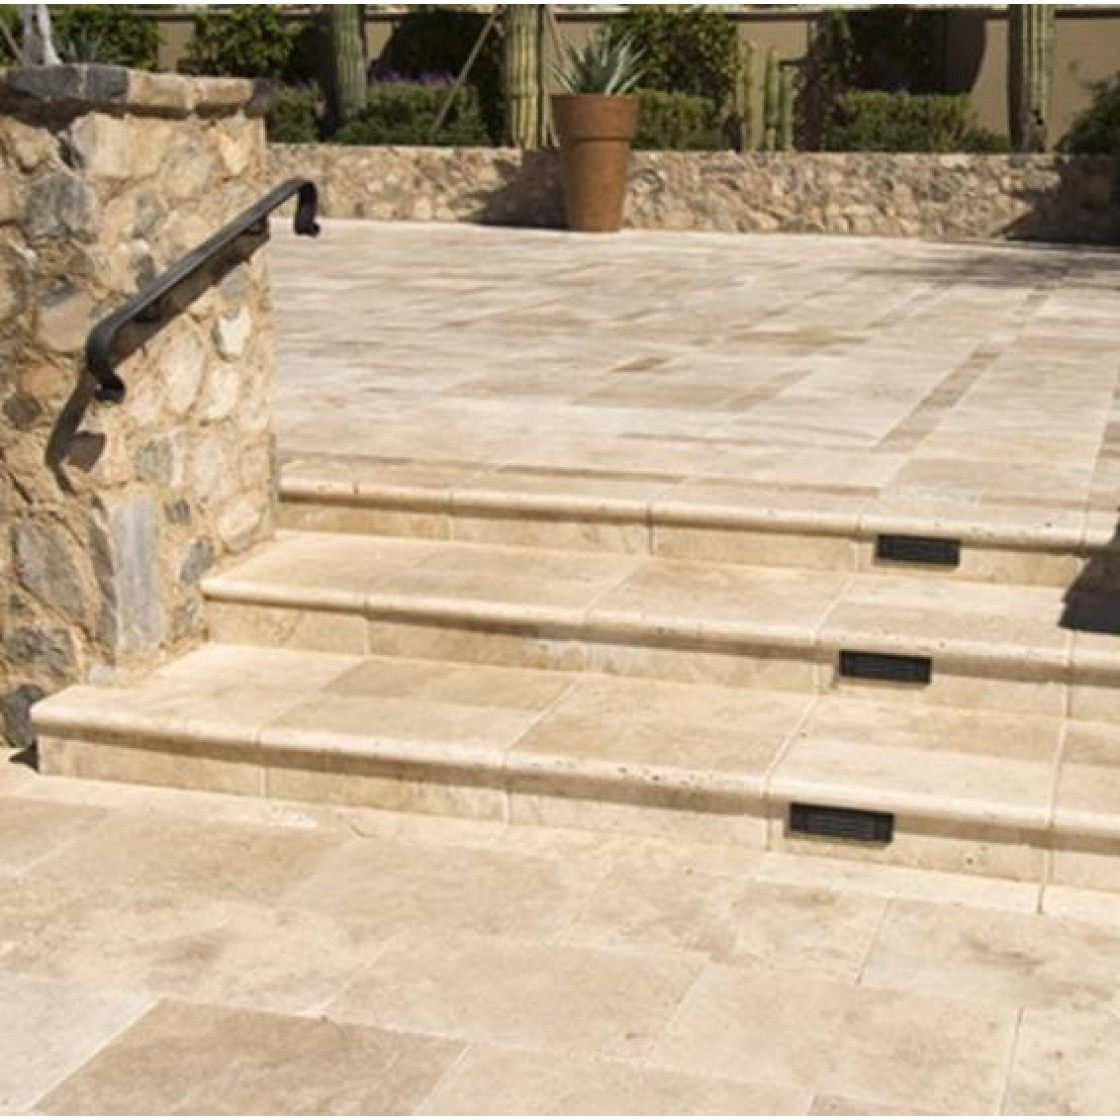 The Cheapest Travertine Tiles In Melbourne Brisbane Sydney